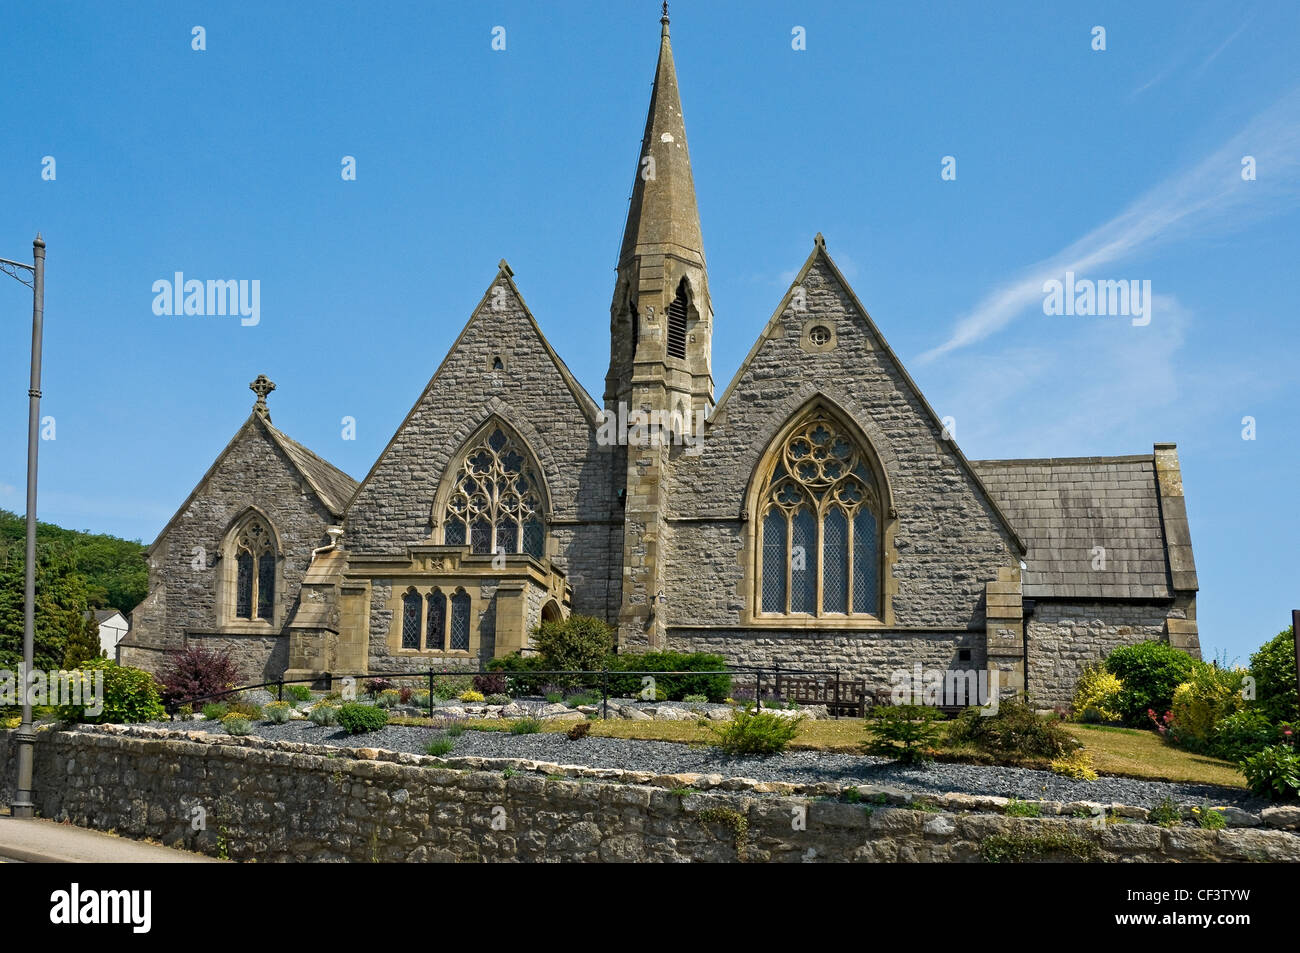 The Parish Church of St Paul consecrated in 1853. - Stock Image